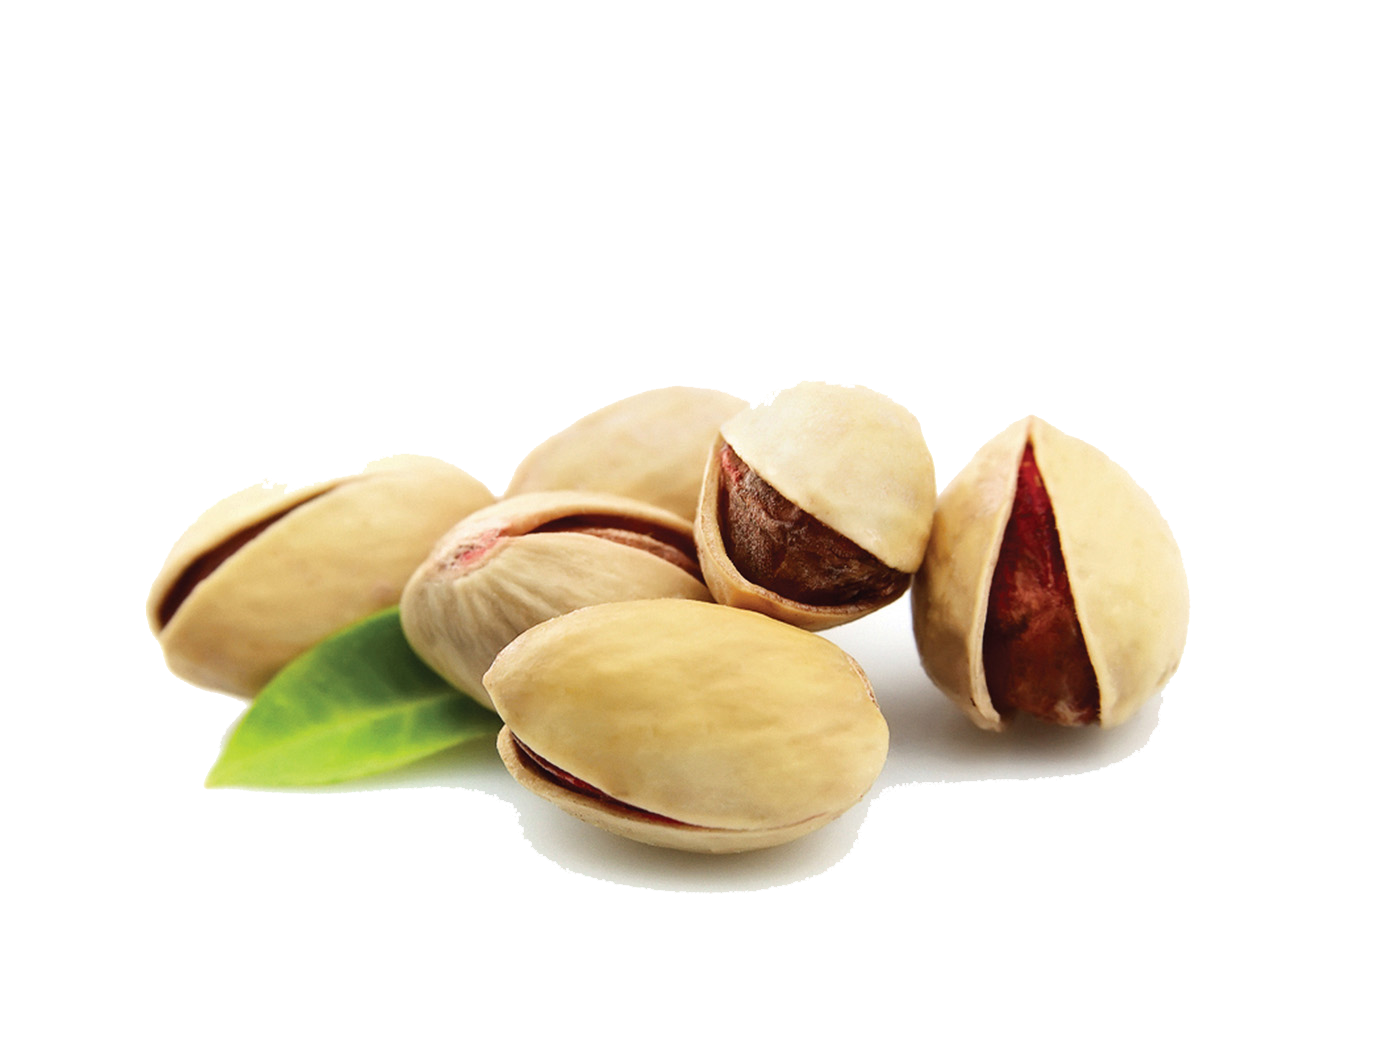 Pistachio Png Pic PNG Image